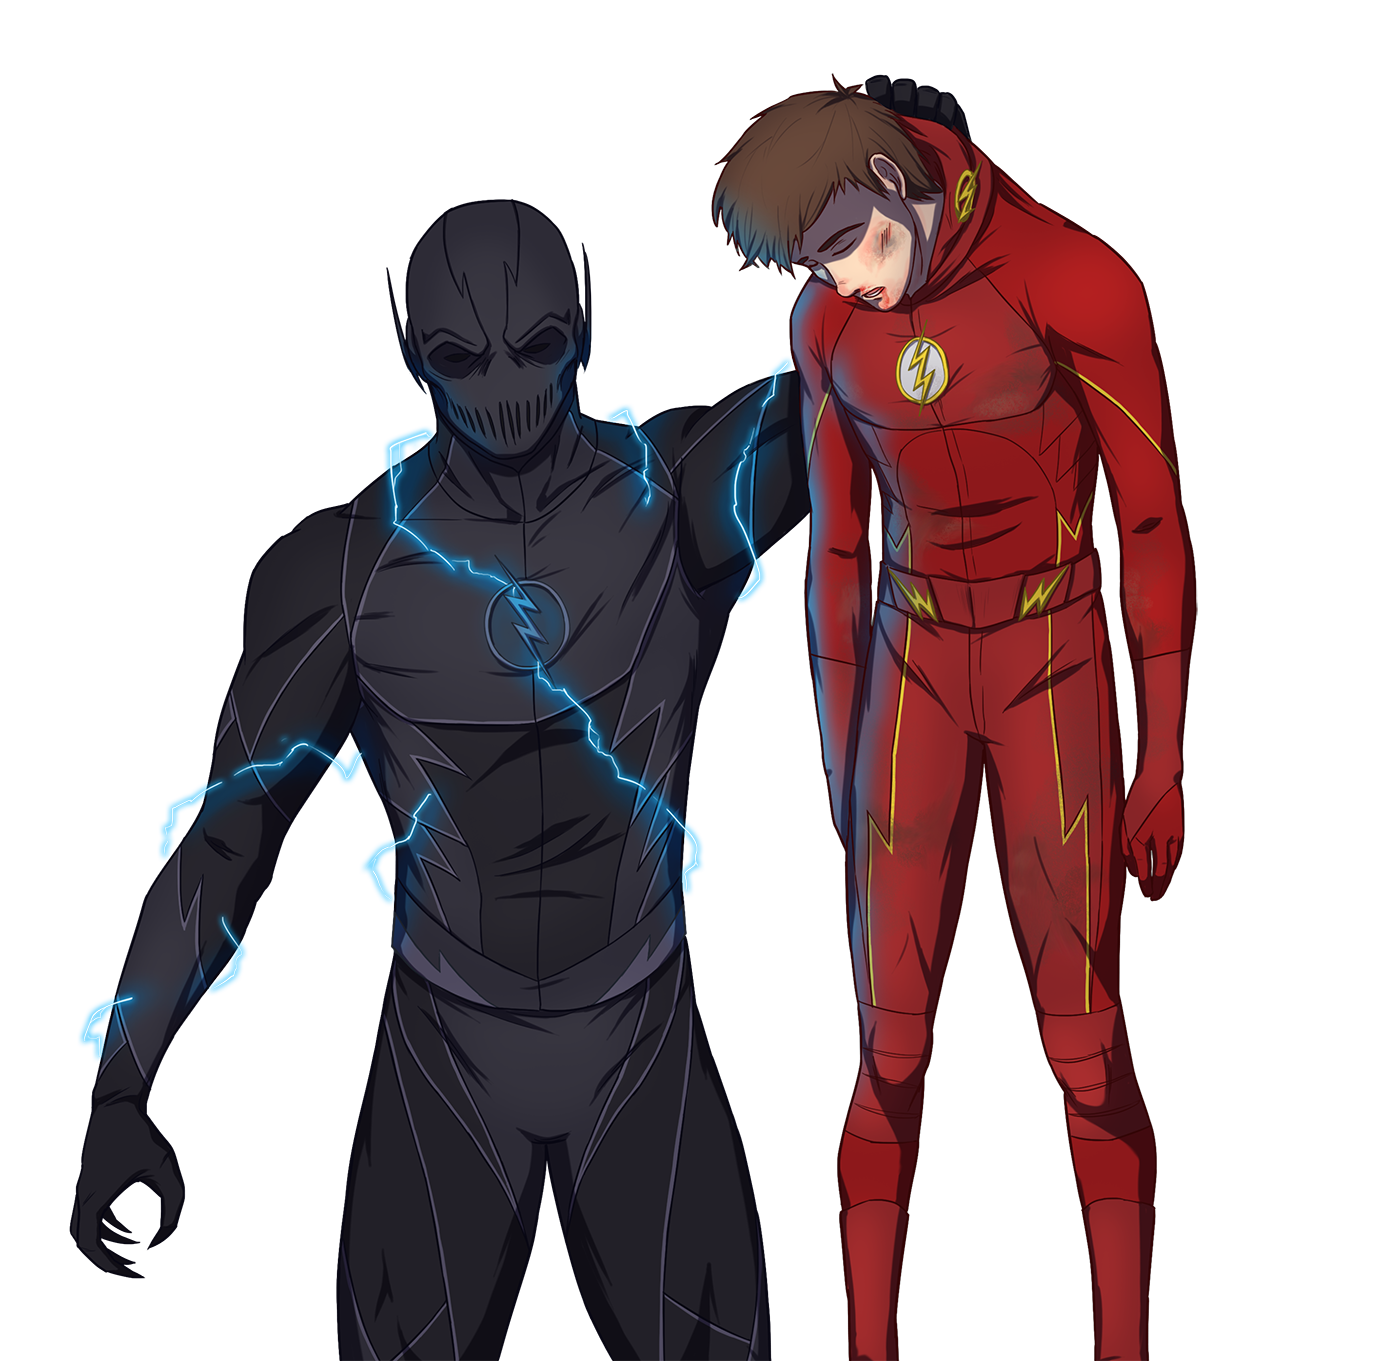 Godspeed drawing zoom. Collection of flash